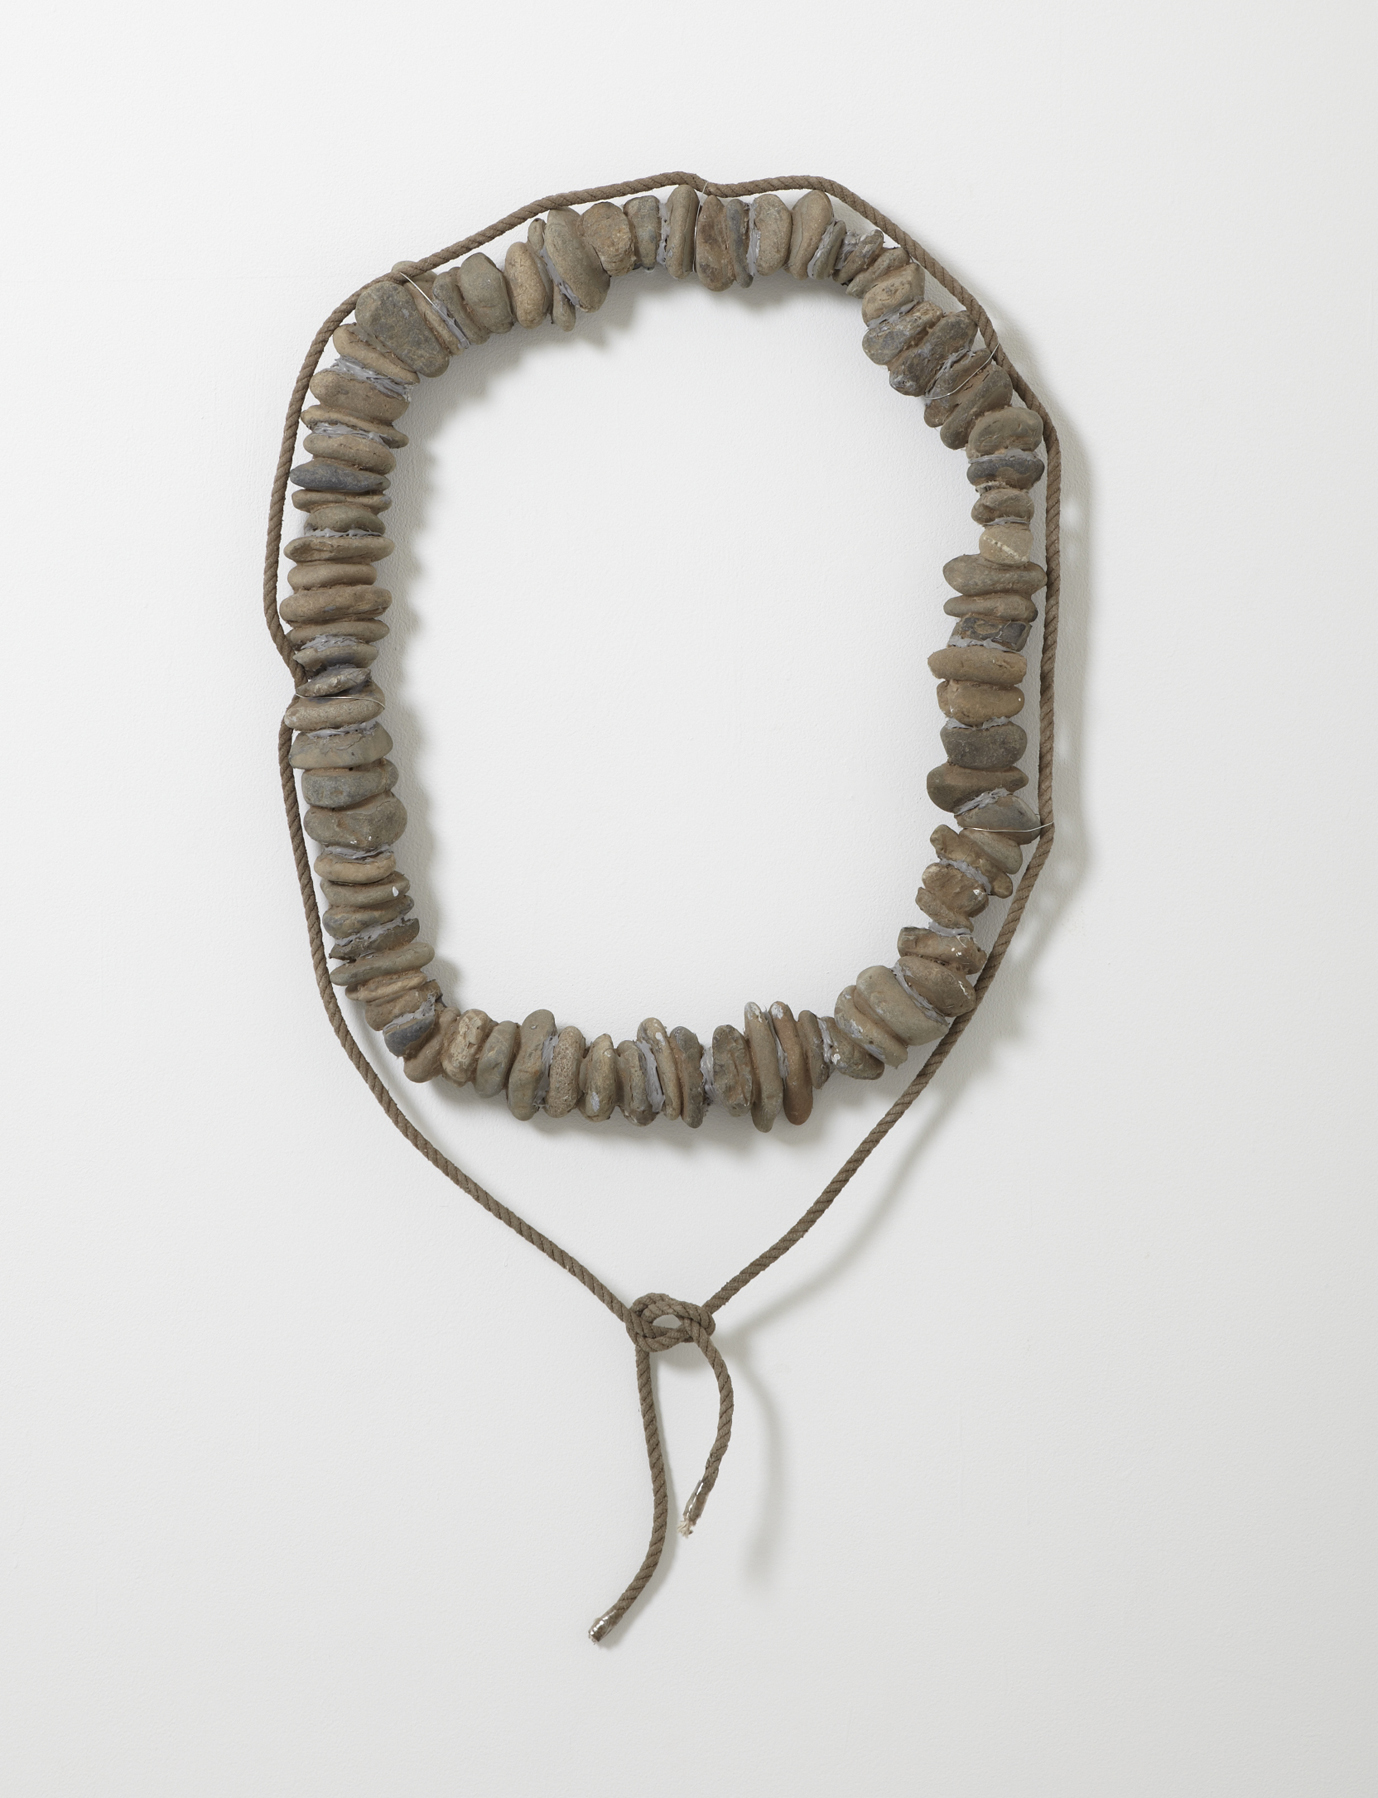 Appearing in Circle , 1969 在輪 ( Zairin ) Stone, rope 40 15/16 x 21 5/8 x 3 1/8 inches 104 x 55 x 8 centimeters